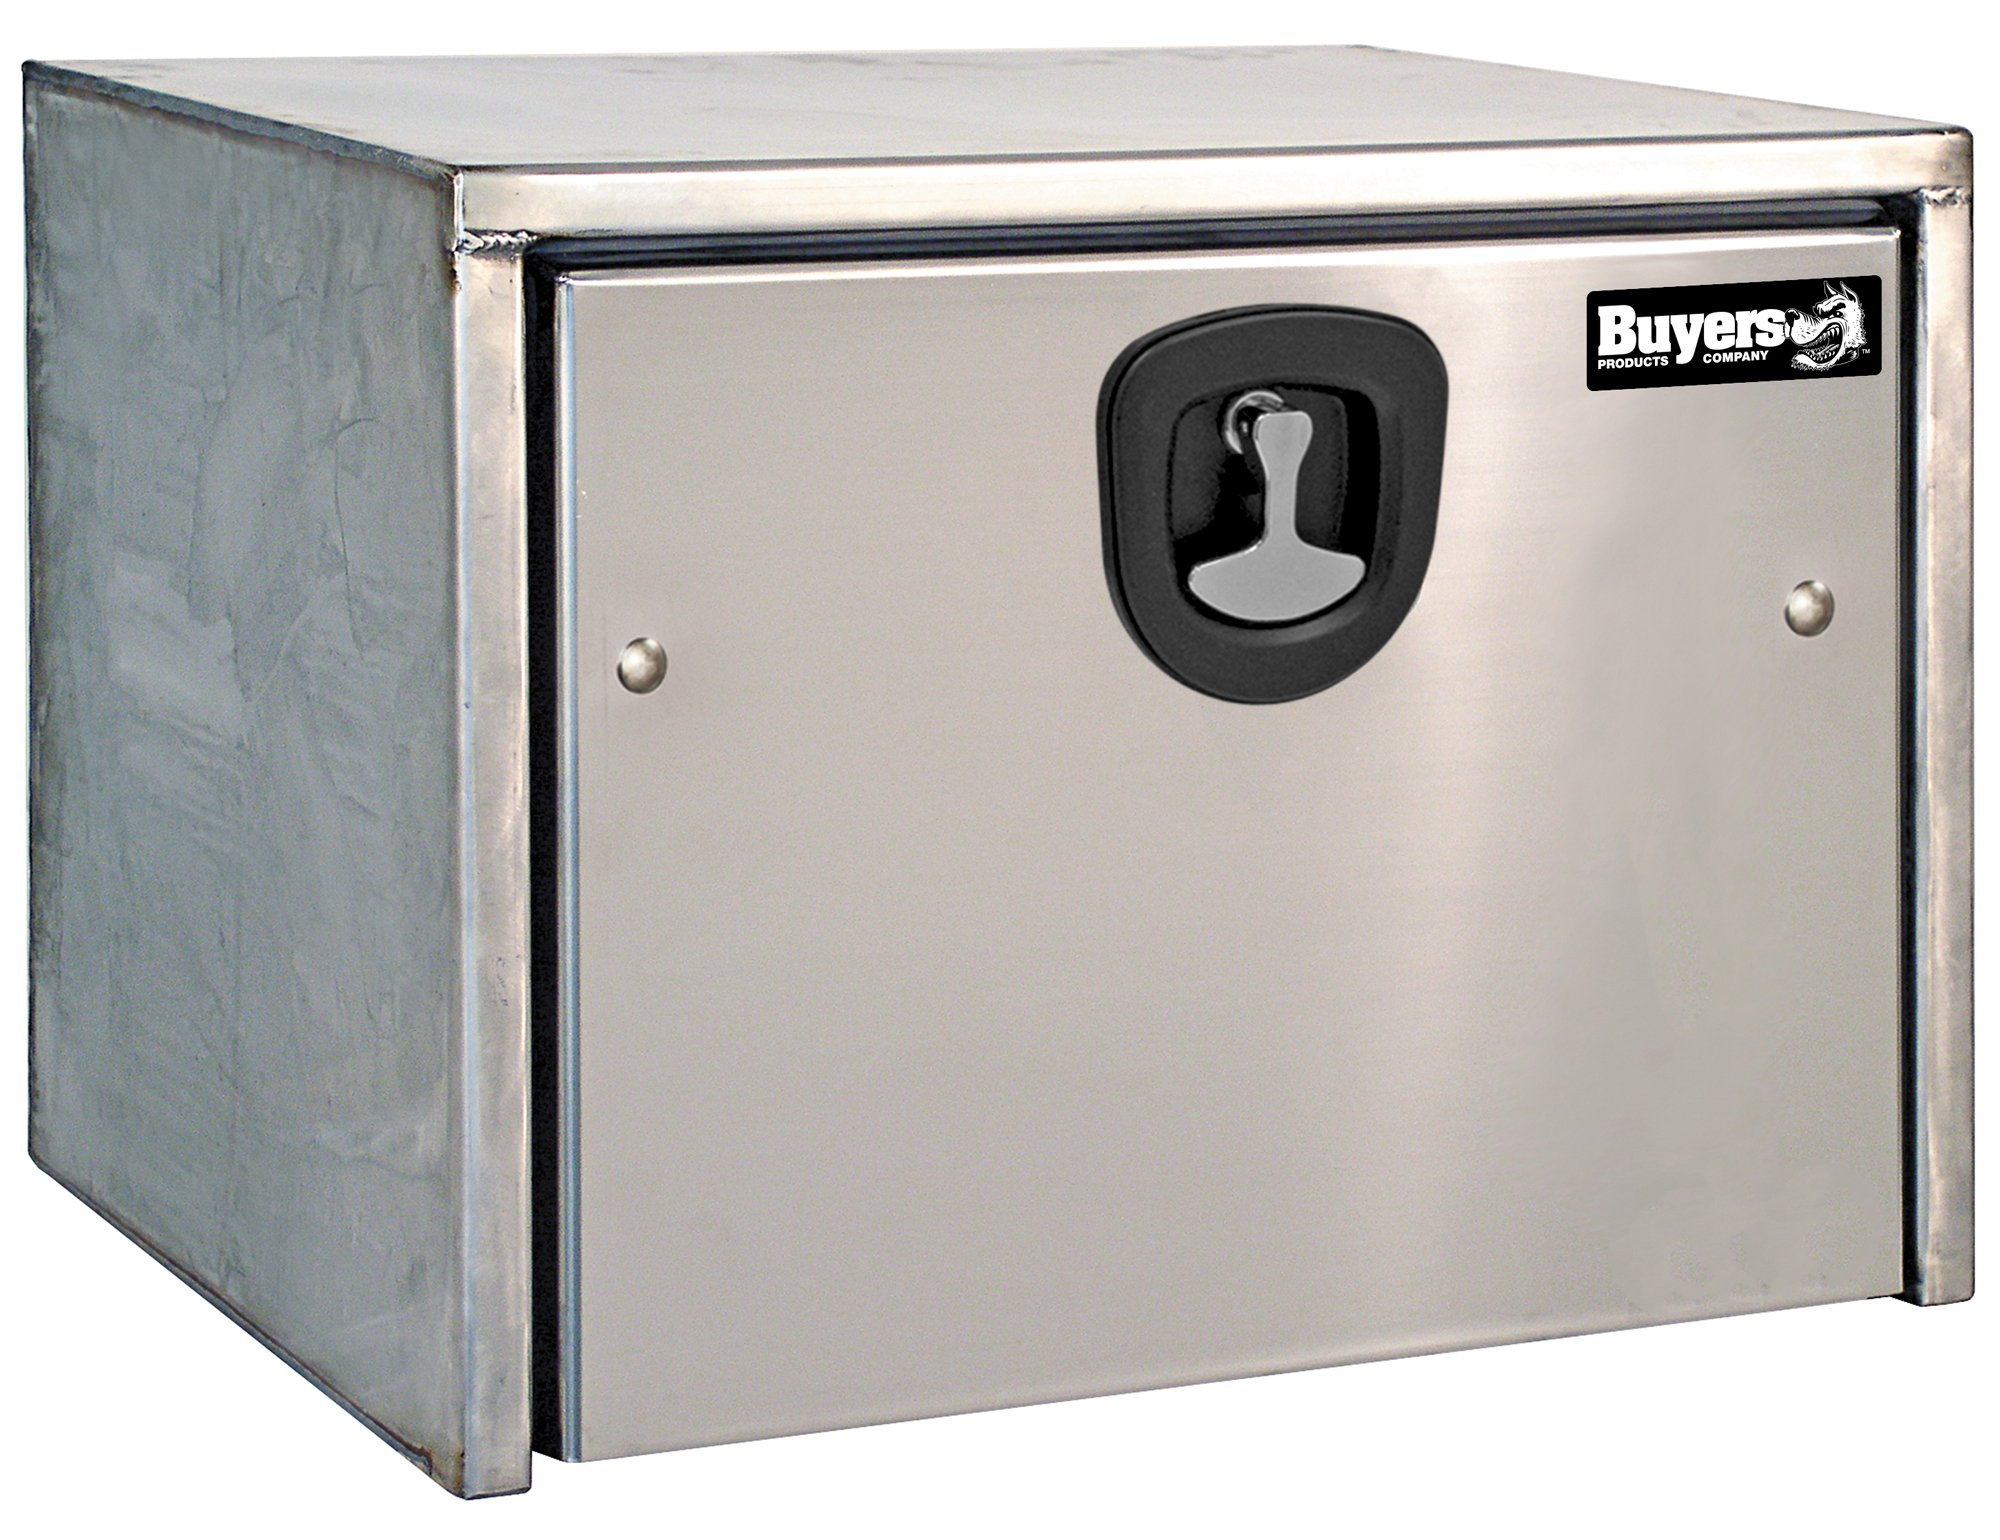 Buyers Products Stainless Steel Underbody Truck Box w/Polished Stainless Steel Door (18x18x36 Inch)